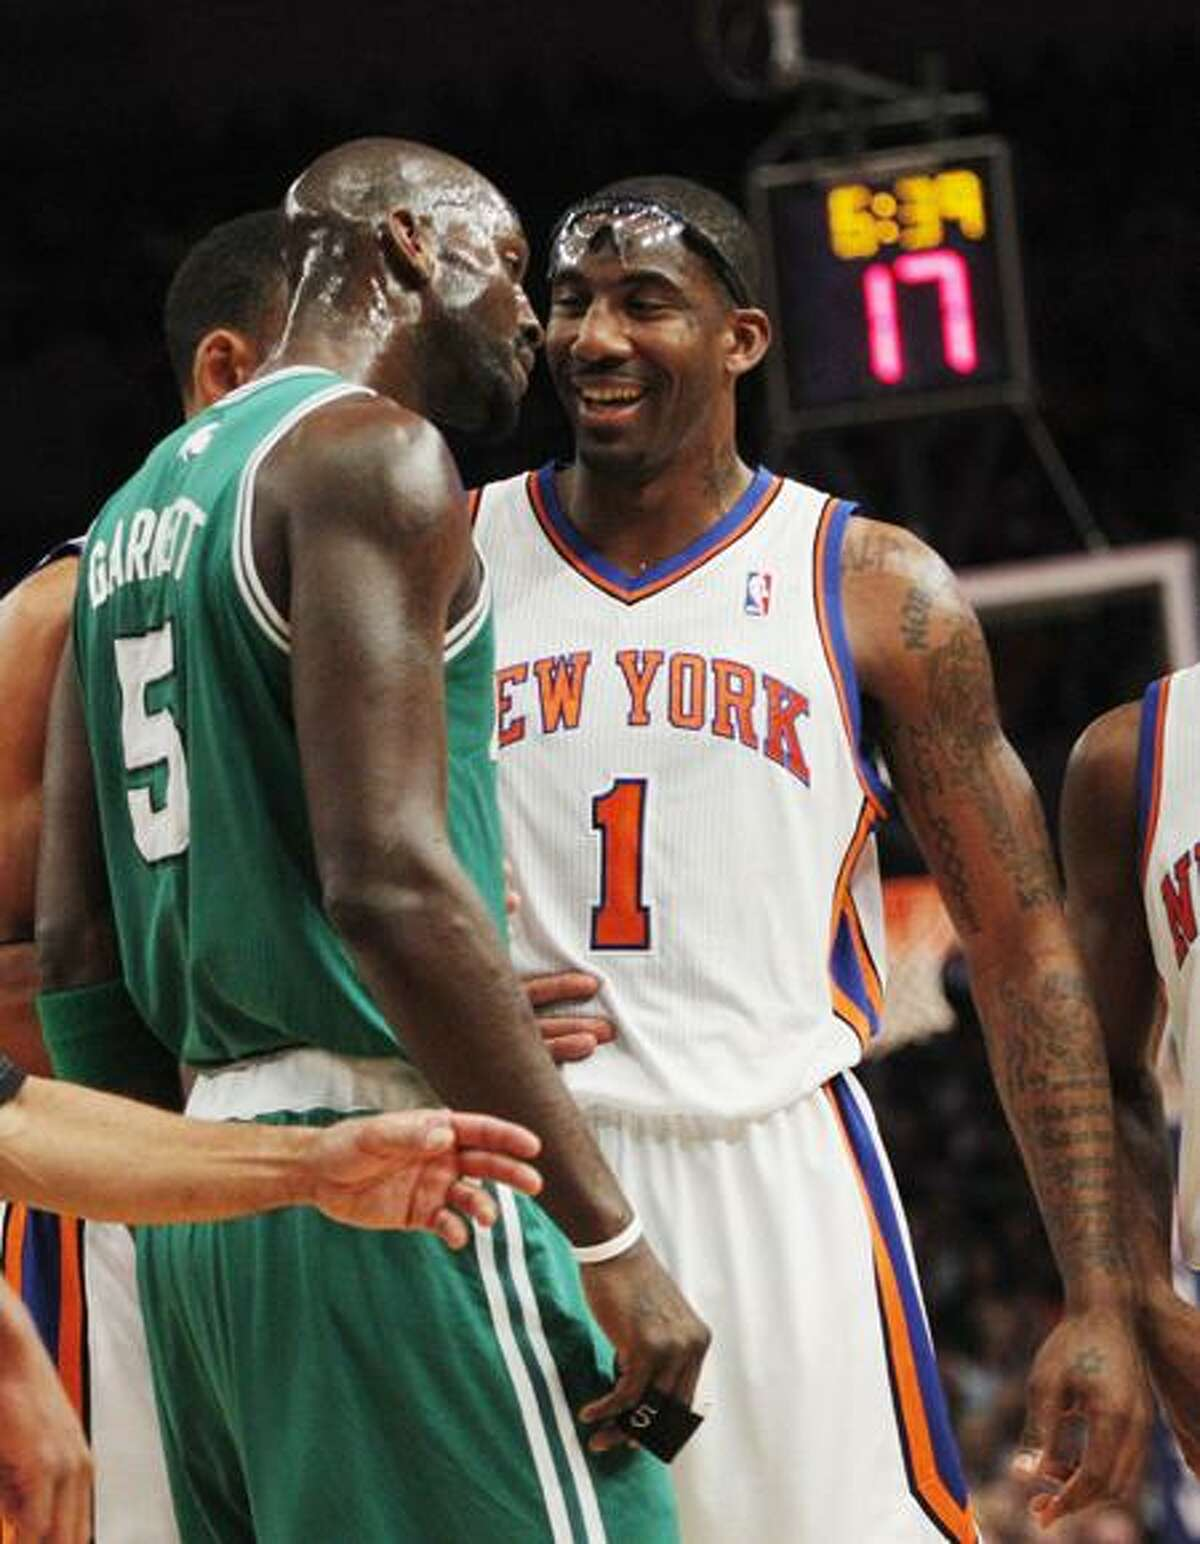 Boston Celtics' Kevin Garnett (5) exchanges words with New York Knicks' Amare Stoudemire (1) during the first half of Game 3 of a first-round NBA basketball playoff series Friday, April 22, 2011, in New York. (AP Photo/Frank Franklin II)